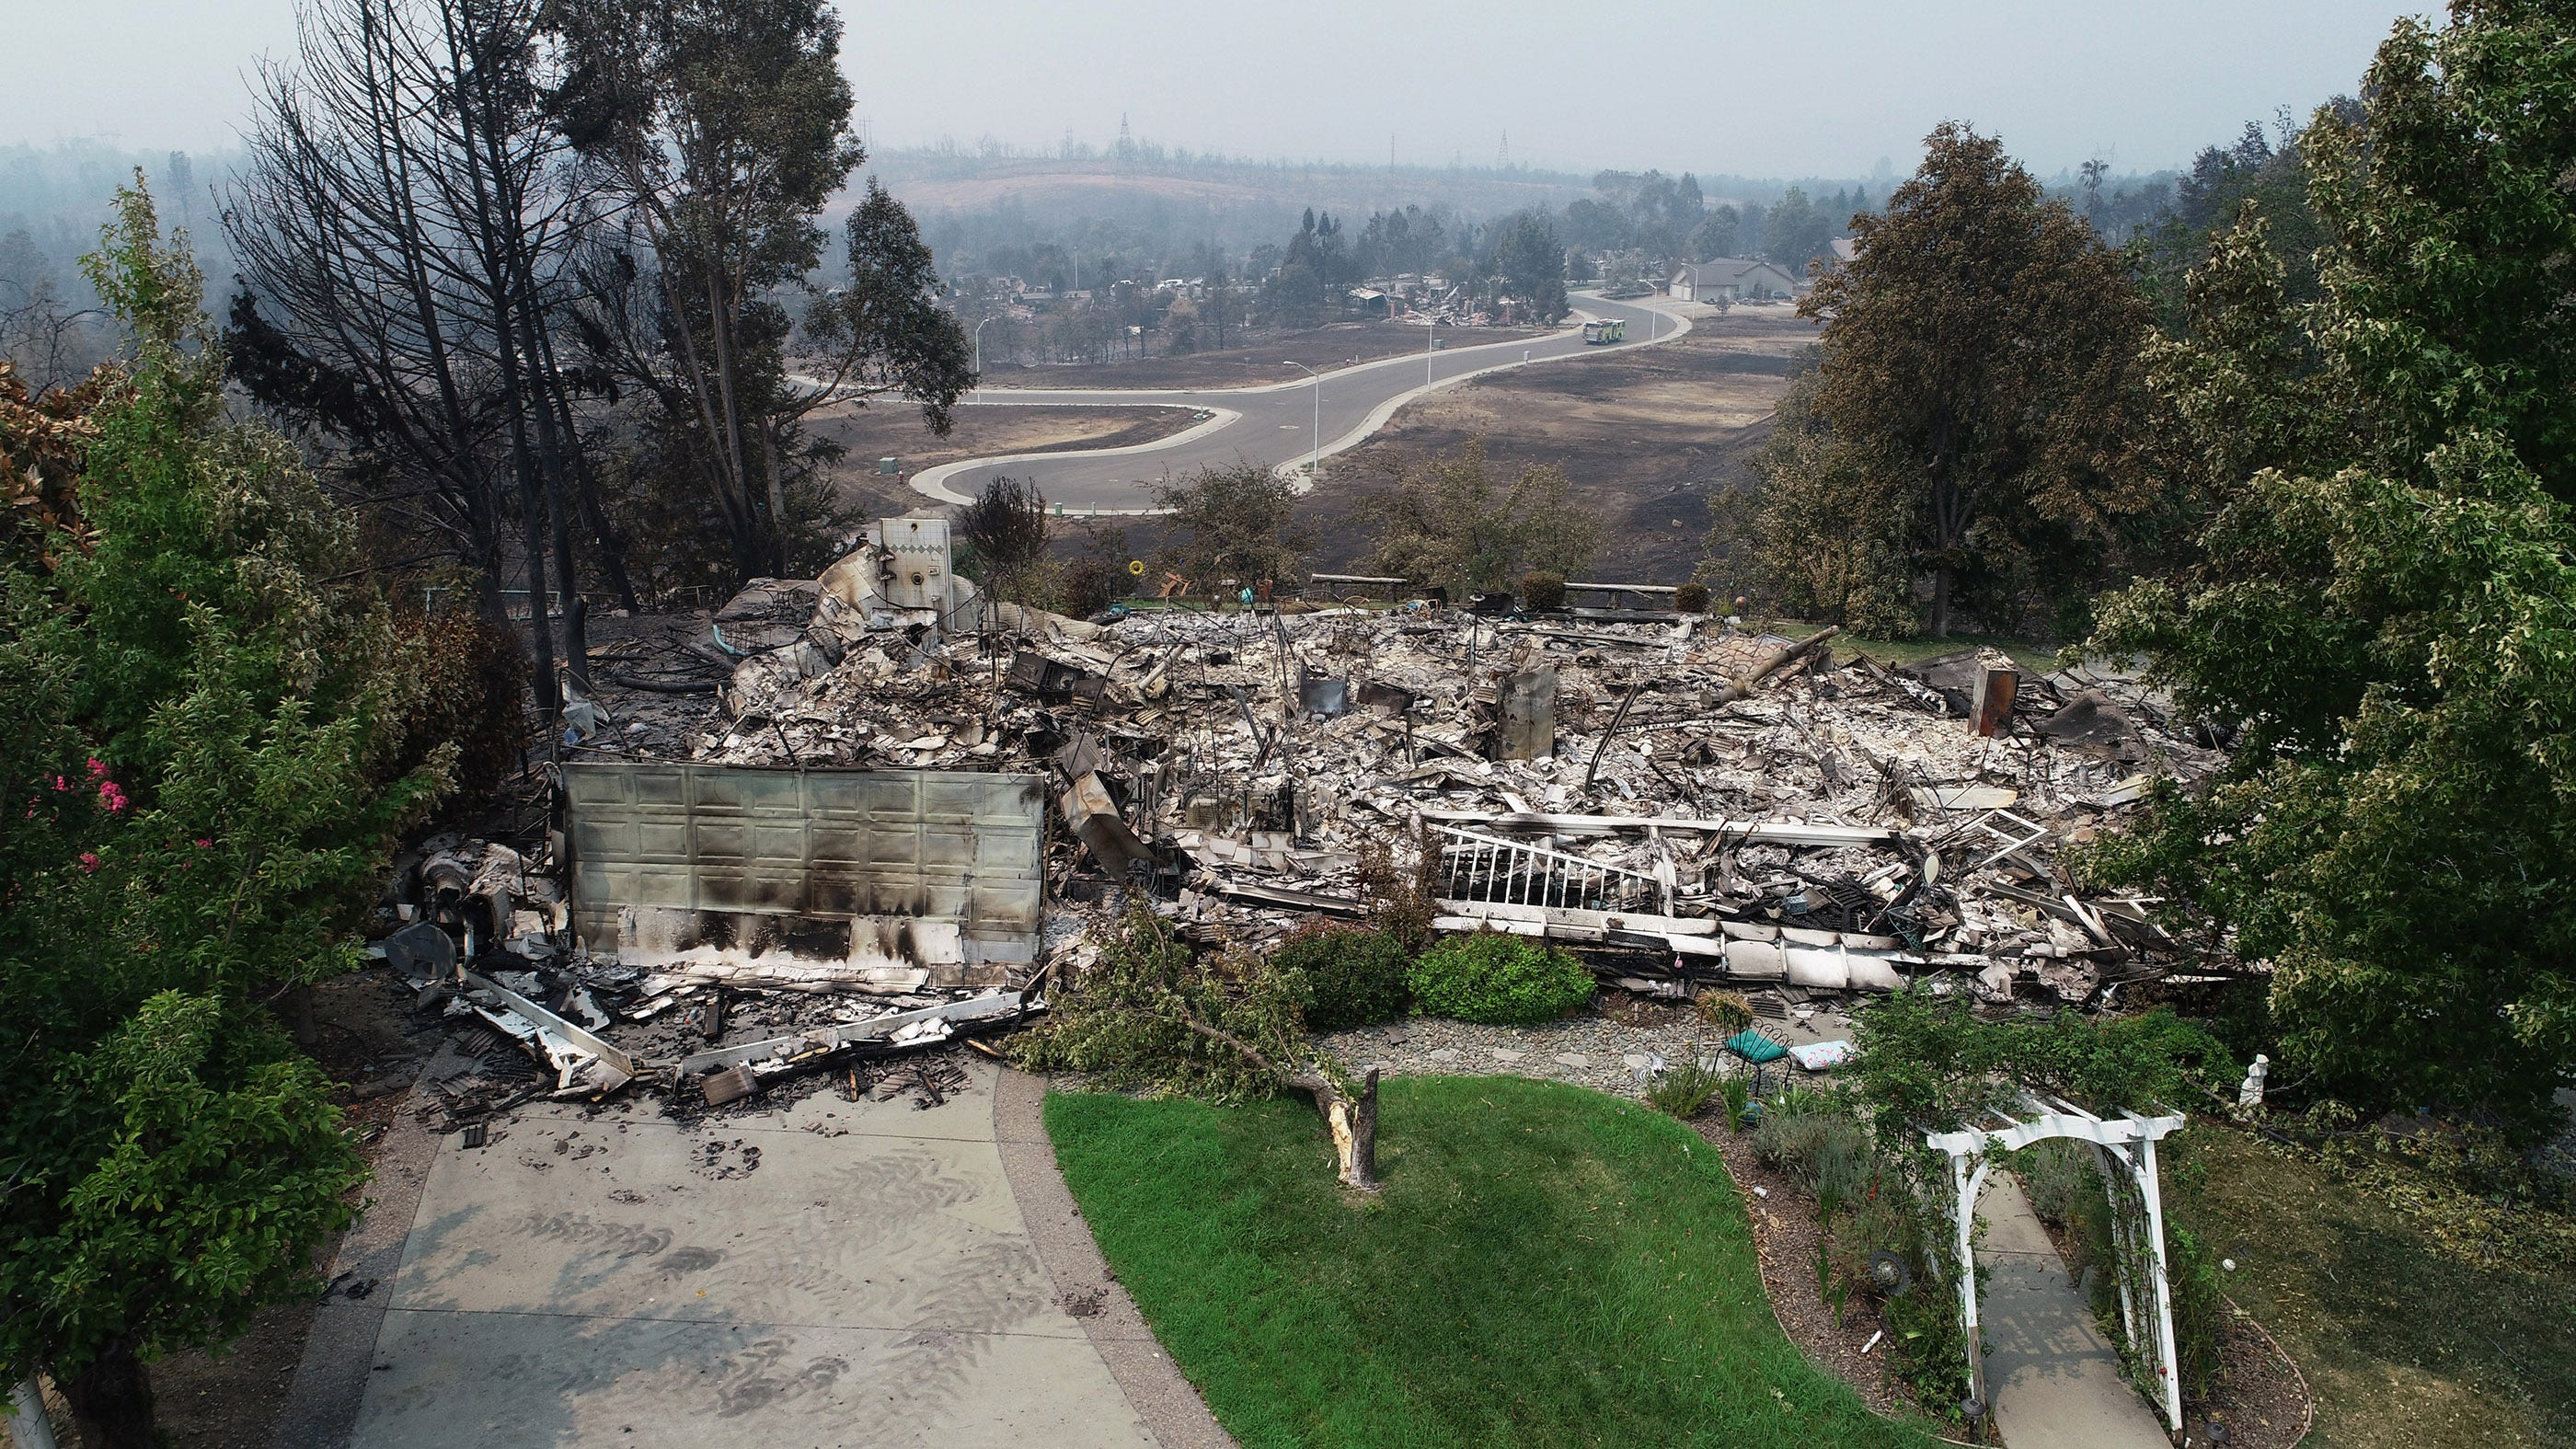 A home in the River Ridge Park subdivision  in Redding, Calif. on Aug. 1, 2018, was destroyed by the Carr Fire.